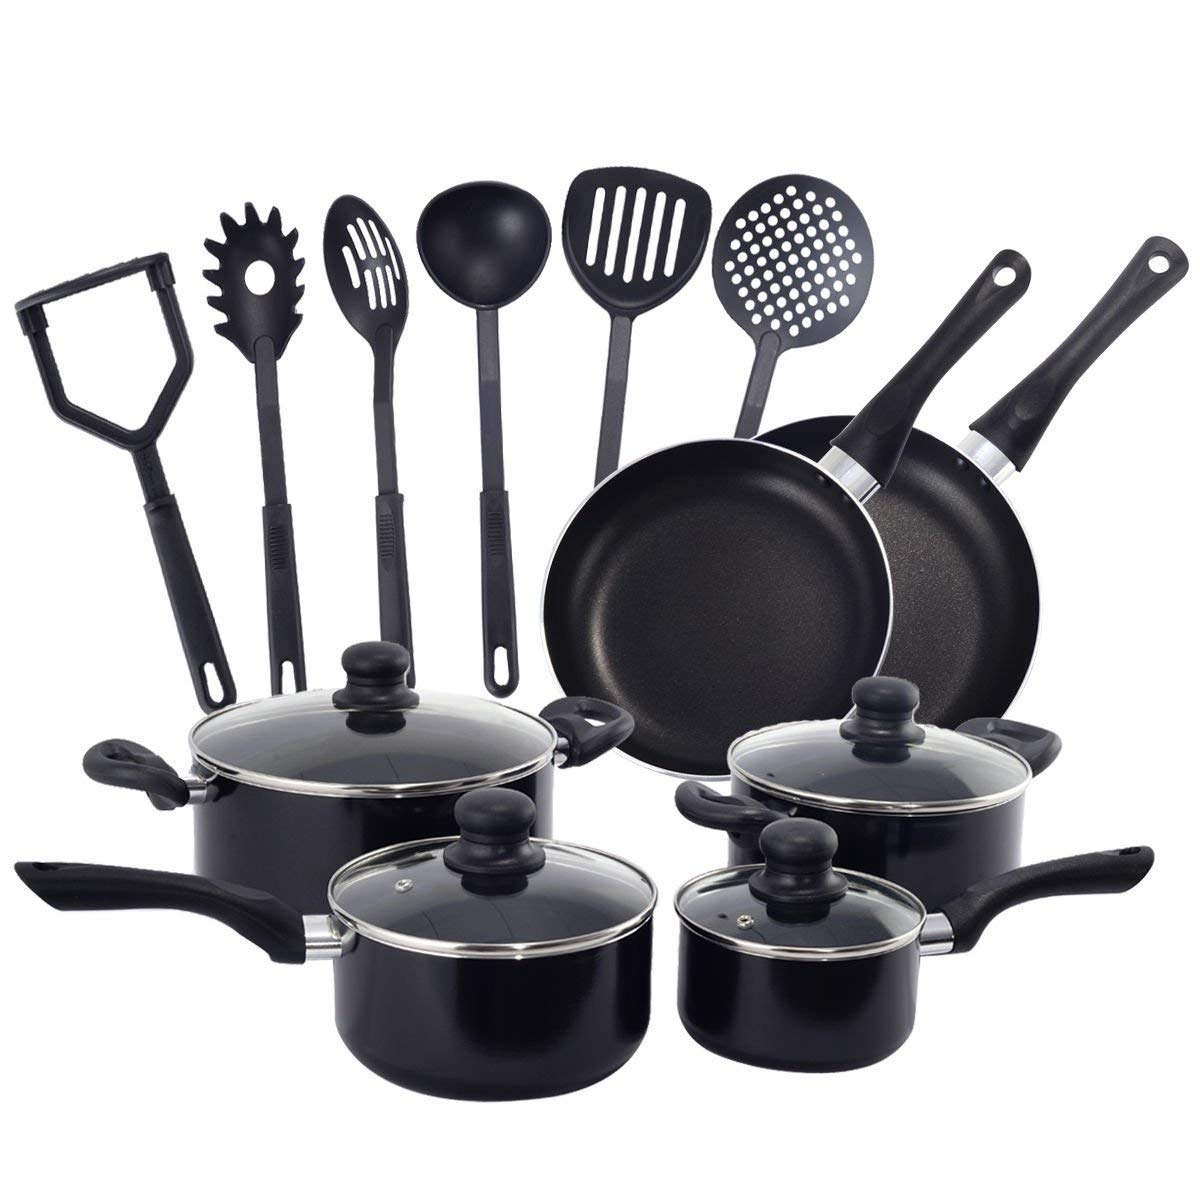 16 Piece Non Stick Cooking Kitchen Cookware Set Pots And Pans Kitchen Set New